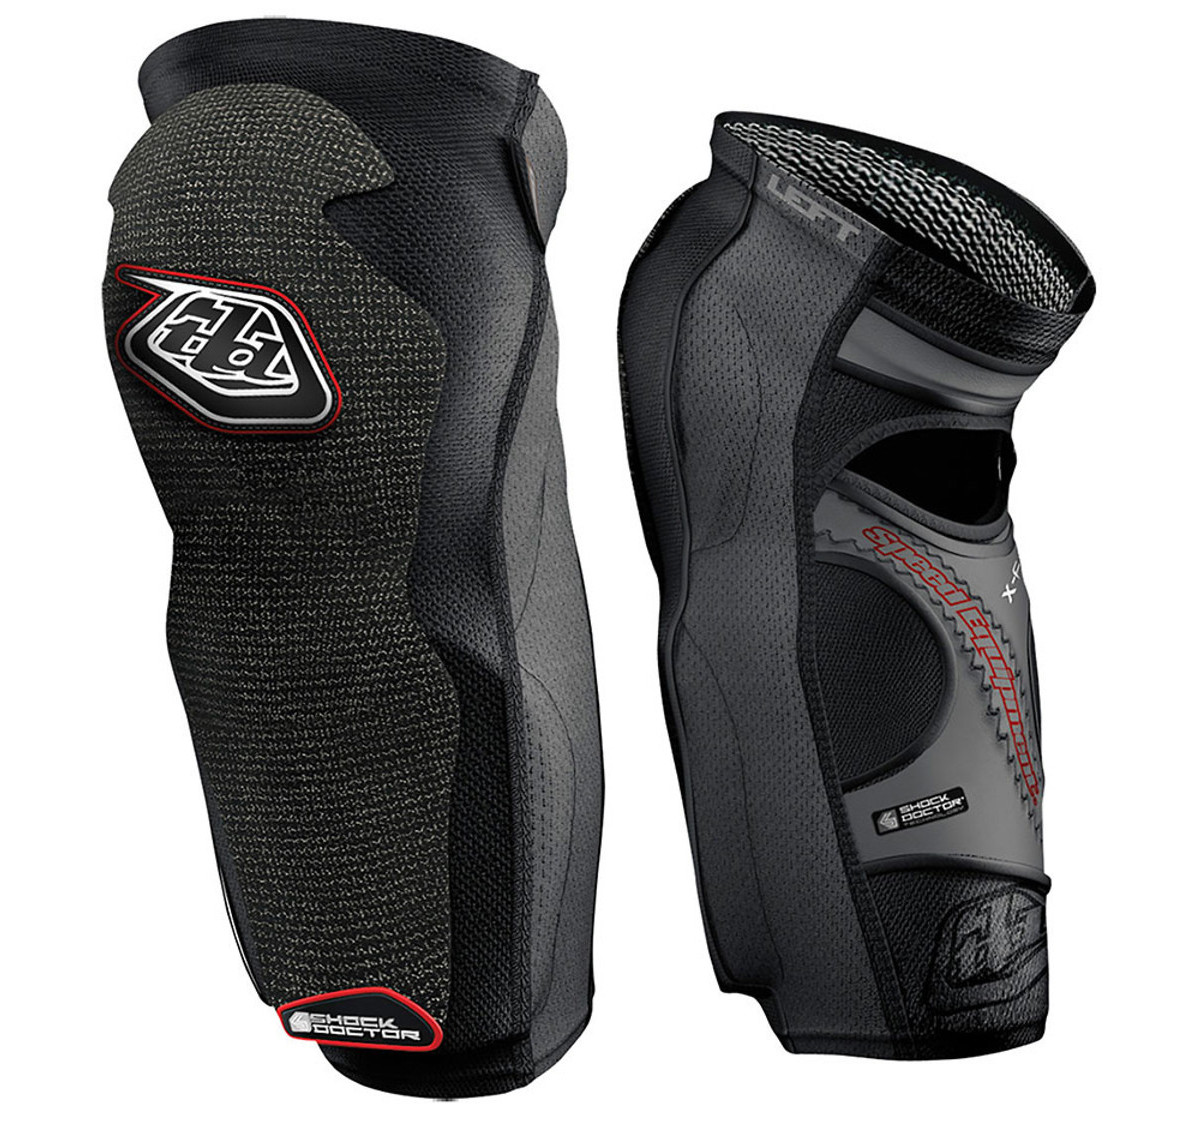 Troy Lee Designs 5450 Long Knee Guards  TLD 5450 Knee Guards Long